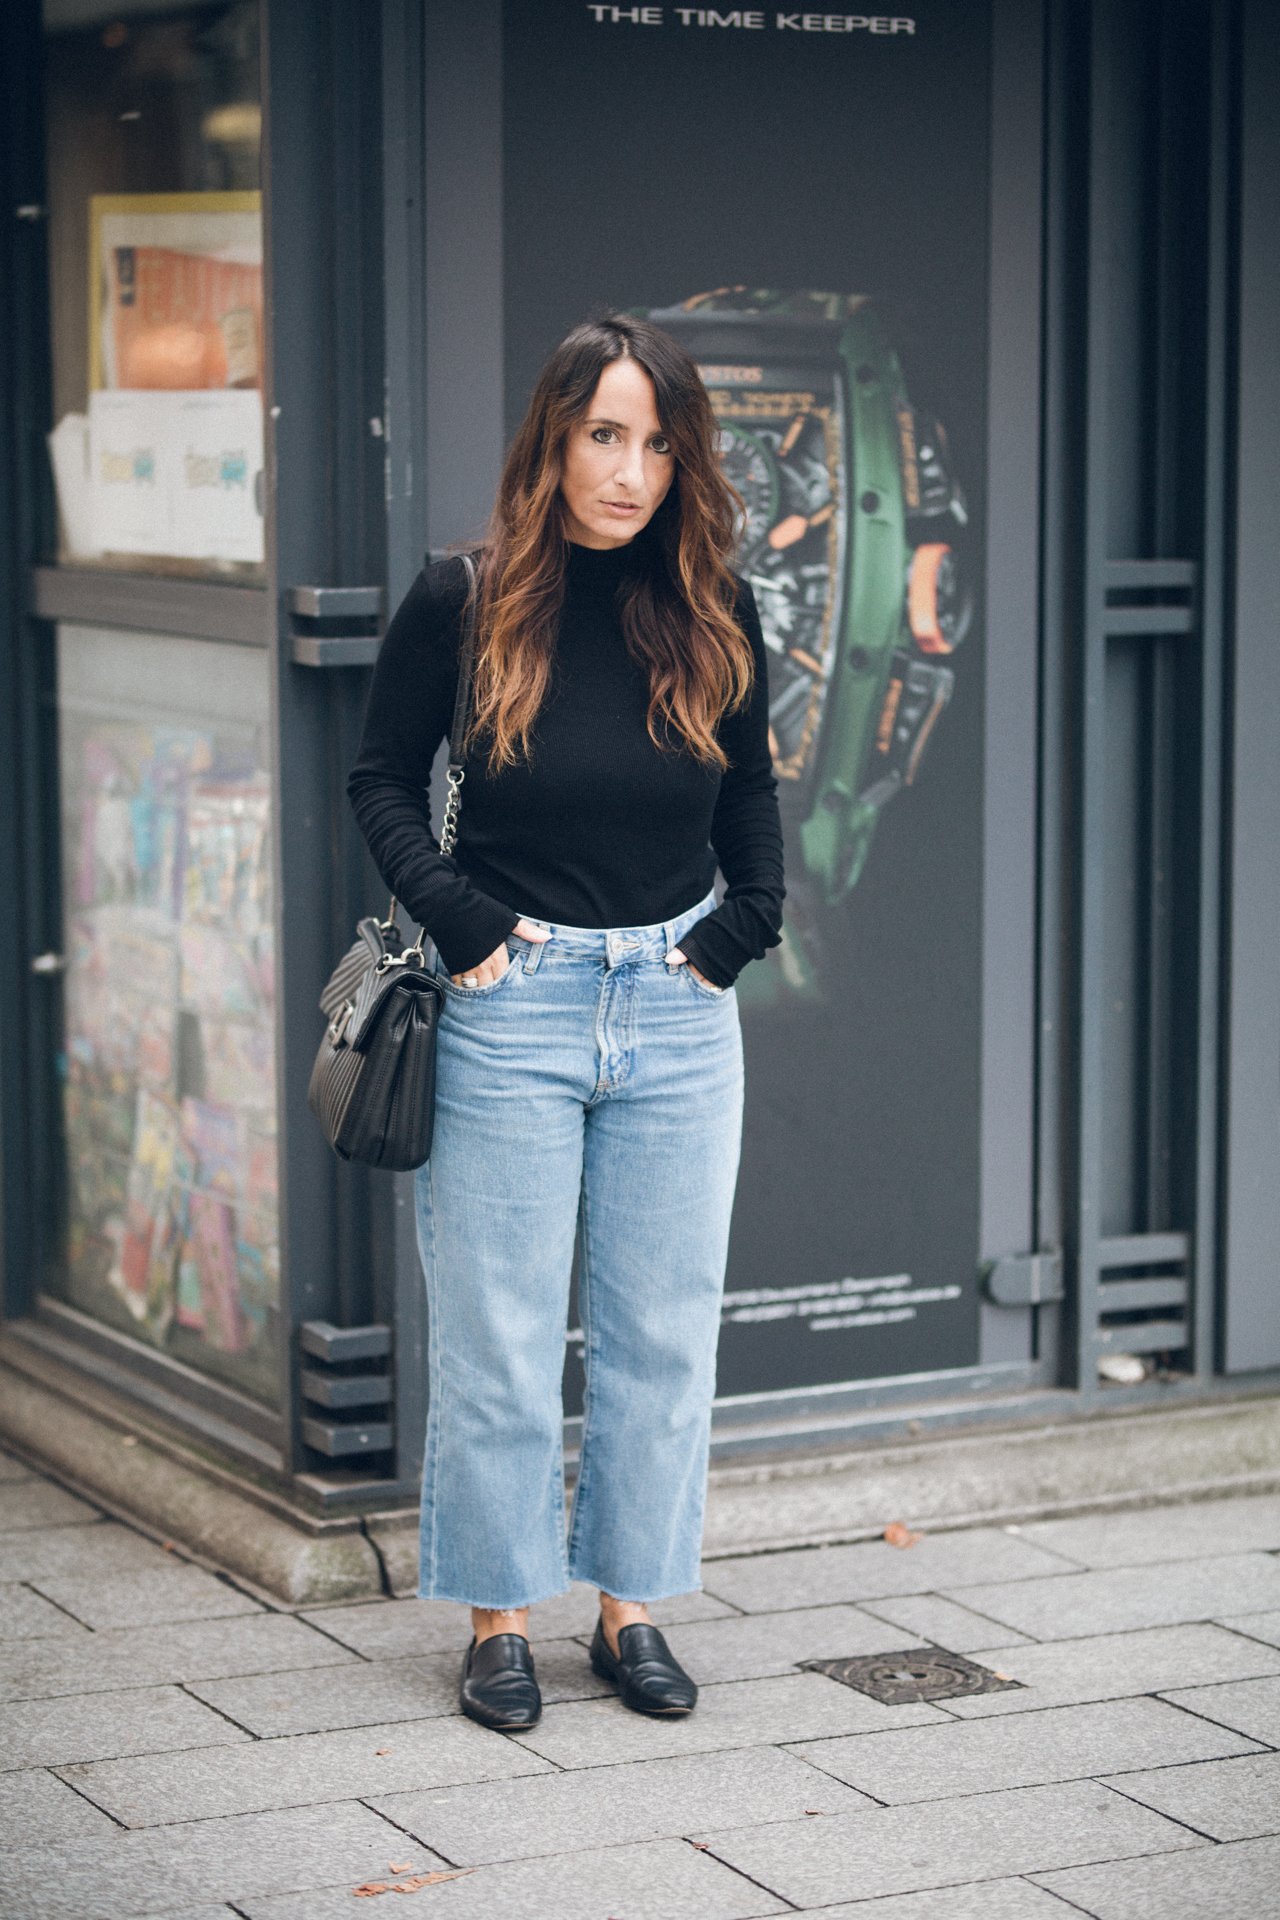 OUTFIT | Mom Jeans, Black Shirt, Loafer & Shoulder Bag